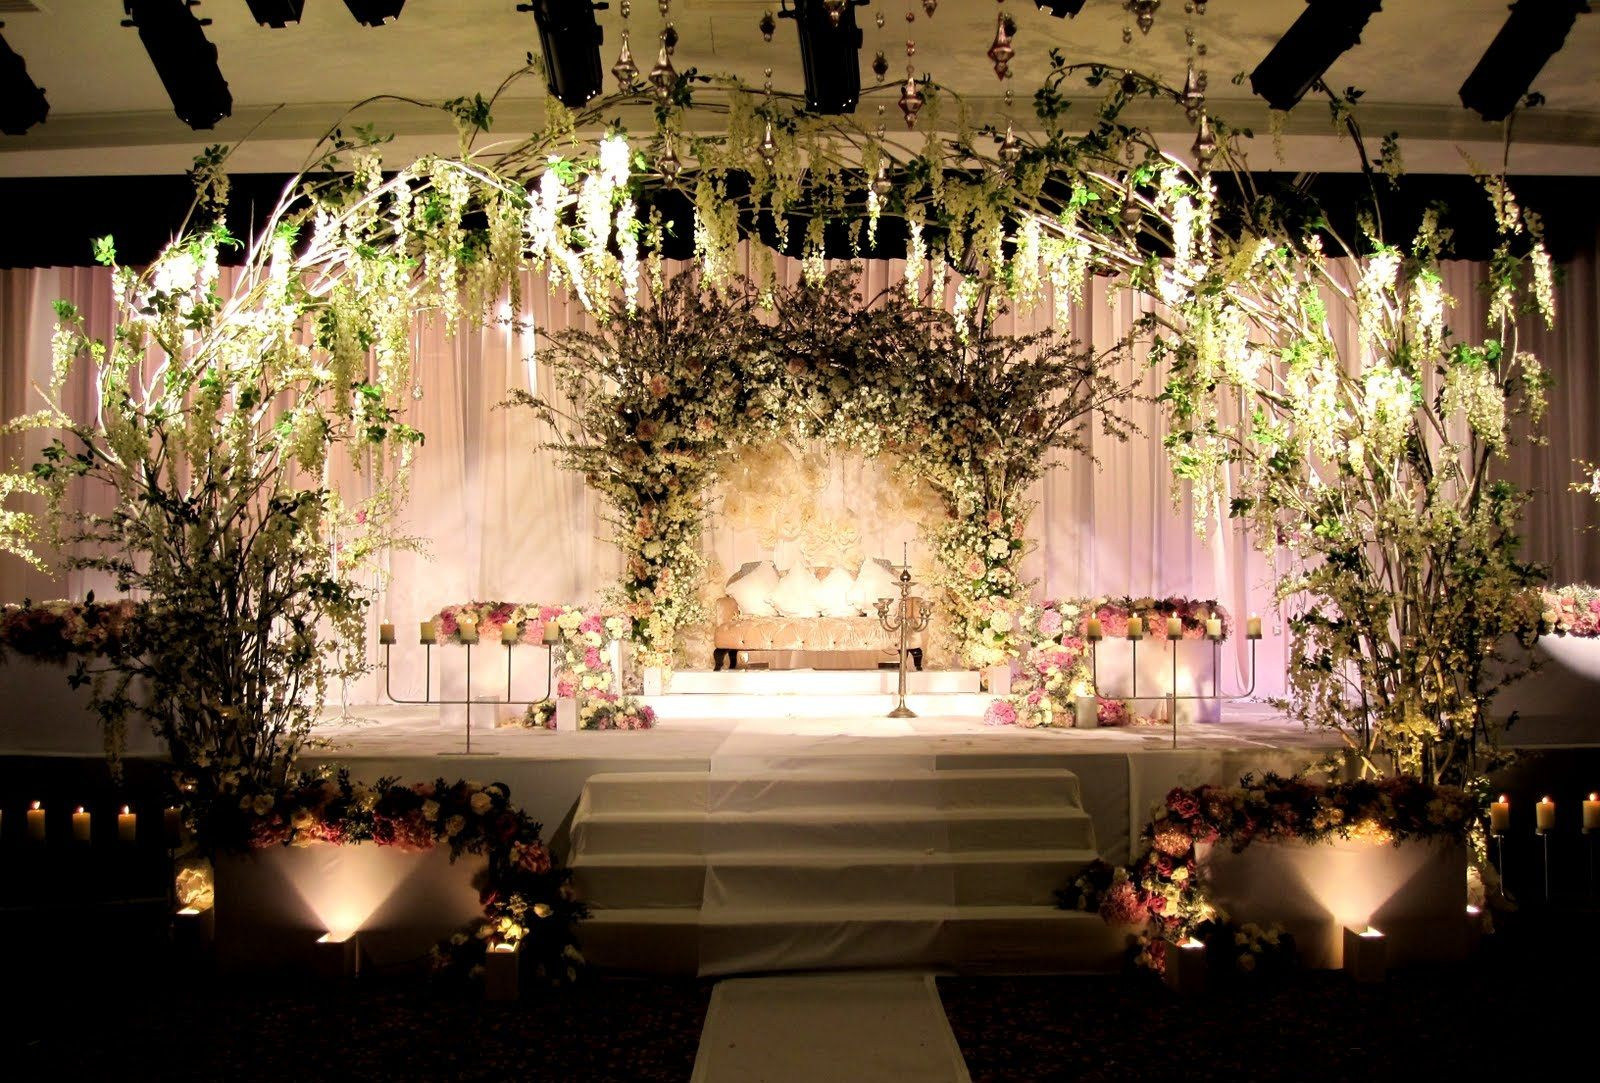 Wedding decoration flowers names 65oiebhrg 16001083 stage wedding decoration flowers names 65oiebhrg 16001083 junglespirit Gallery